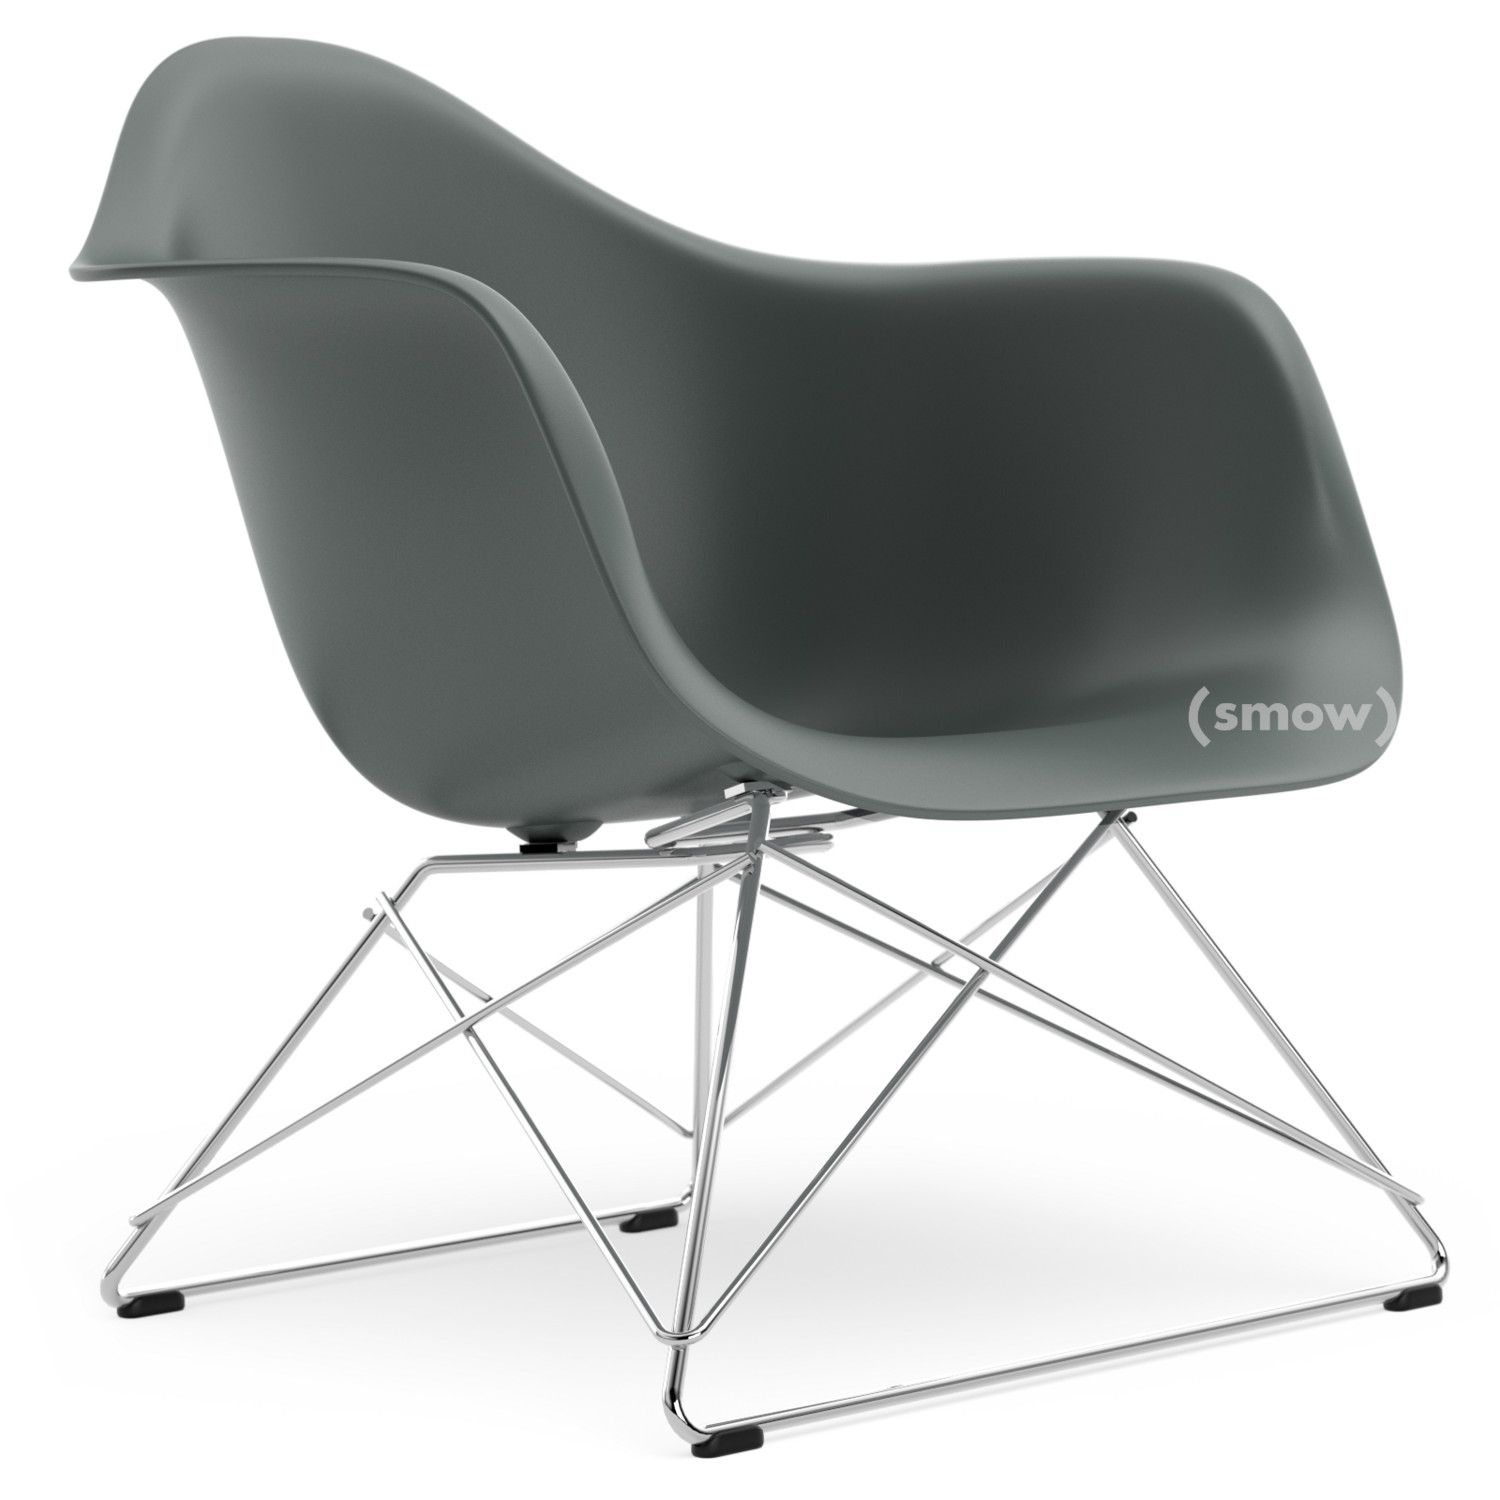 Vitra Lar Granite Grey Without Upholstery Chrome Plated By Charles Ray Eames 1950 Designer Furniture By Smow Com